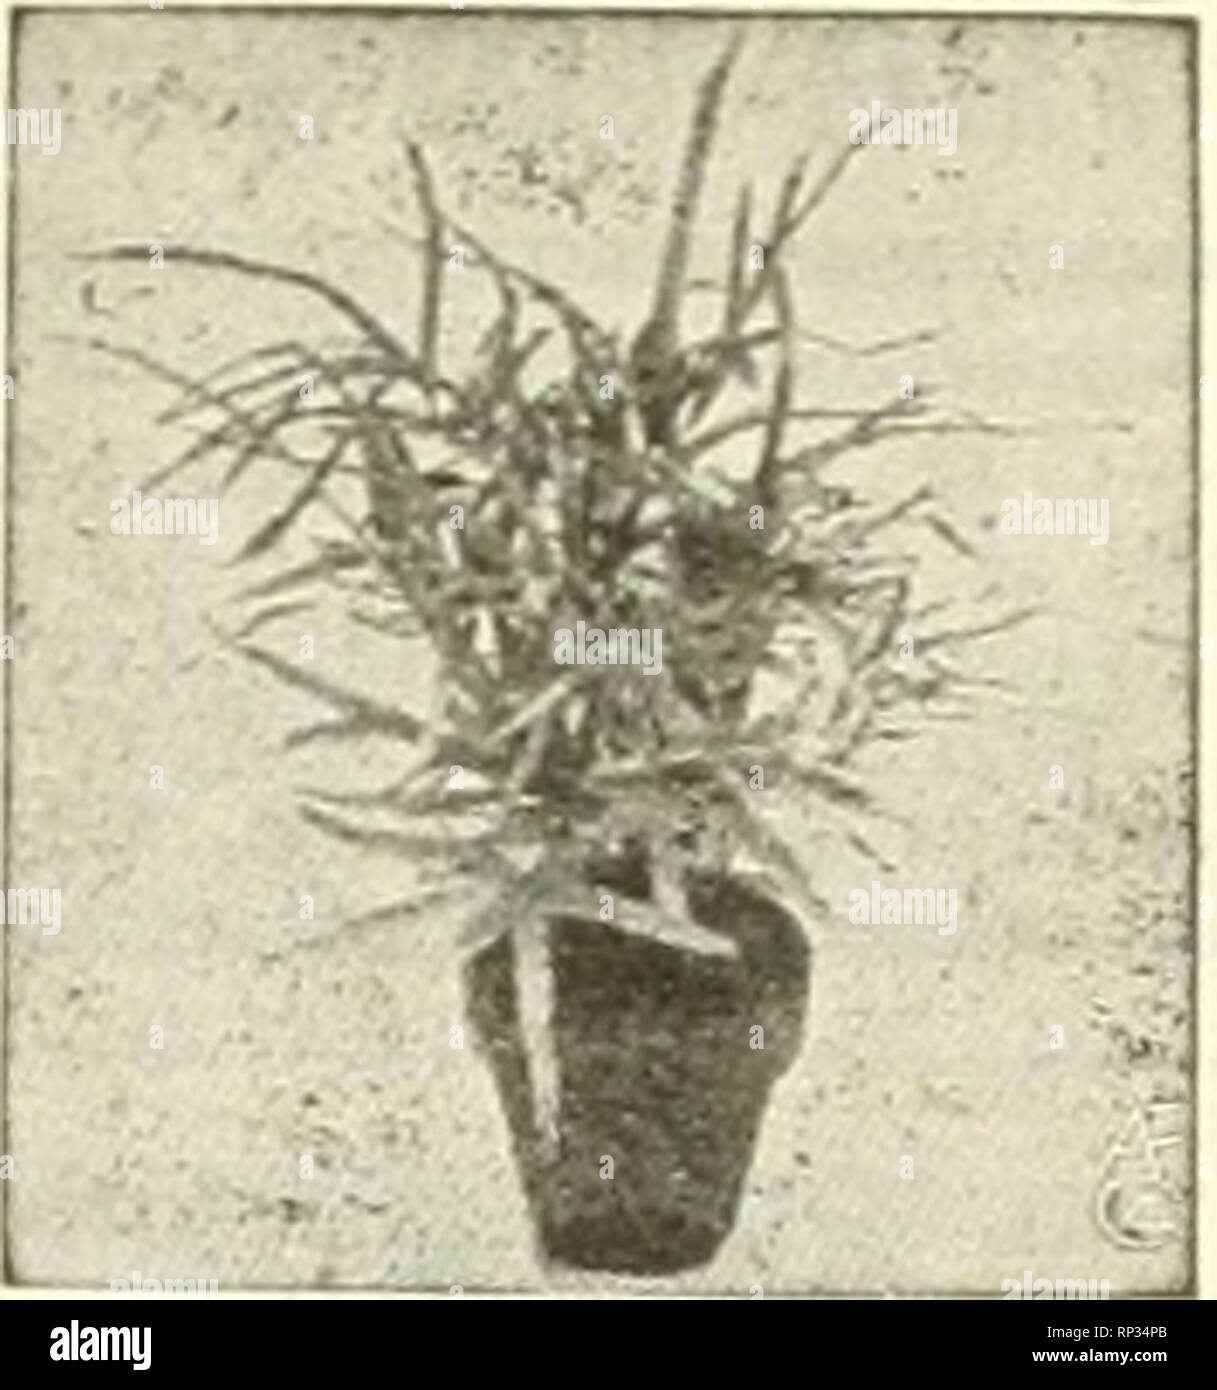 . The American florist : a weekly journal for the trade. Floriculture; Florists. Pteris WUsonj WITTBOLD'S Plants ARE BES- Pteris Serrulata. Order Today and Avoid the Risk of Cold Weather Siifpmenfs. Bedding Plants Aohryantbi-'S, P. do Bailor, 2 iu., $2.50 per 100. Ageratum, StPlla Gurnev and Princess Pau- line, 2-iu., $2.00 per 100. COLEVS, 2-inch. Per 100 Pfister, red and yellow $2.00 Beckwith's Gem 2.00 Golden Bedder 2.00 Verschaffeltii 2.00 Geraniums, S. A. Nutt, Kose, 2-in., $2.00 poi- mo. Gnapbalium Lanatum, 2-in.. $2.00 per 100. Heliotrope, 2-in.. $2.00 per luO. Ivy, ijernian. 2-in.j $2. - Stock Image